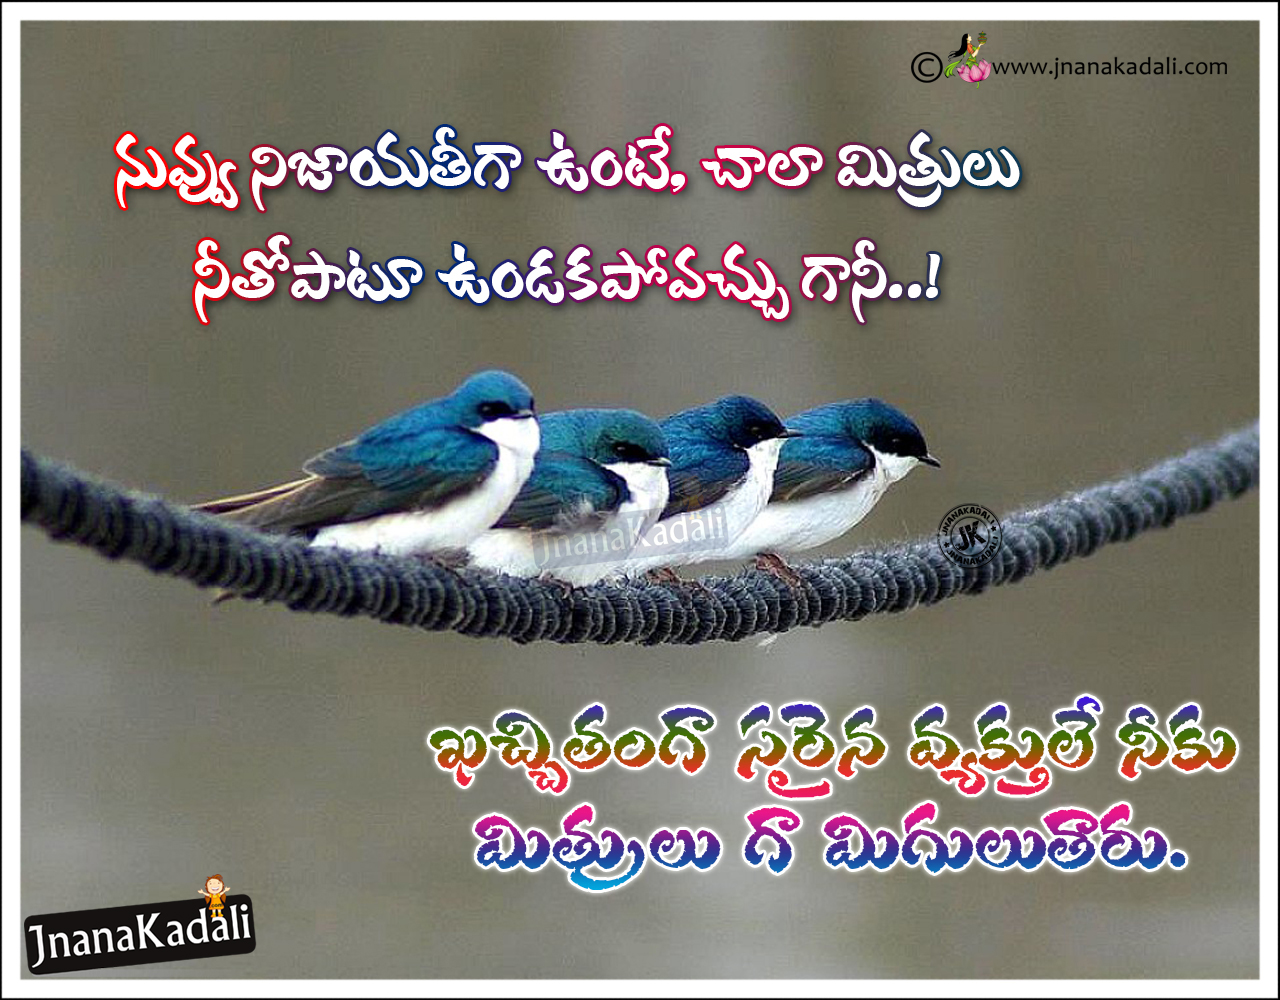 Quotes On Friendship Meaning Full Friendship Quotations In Telugu Language  Jnana